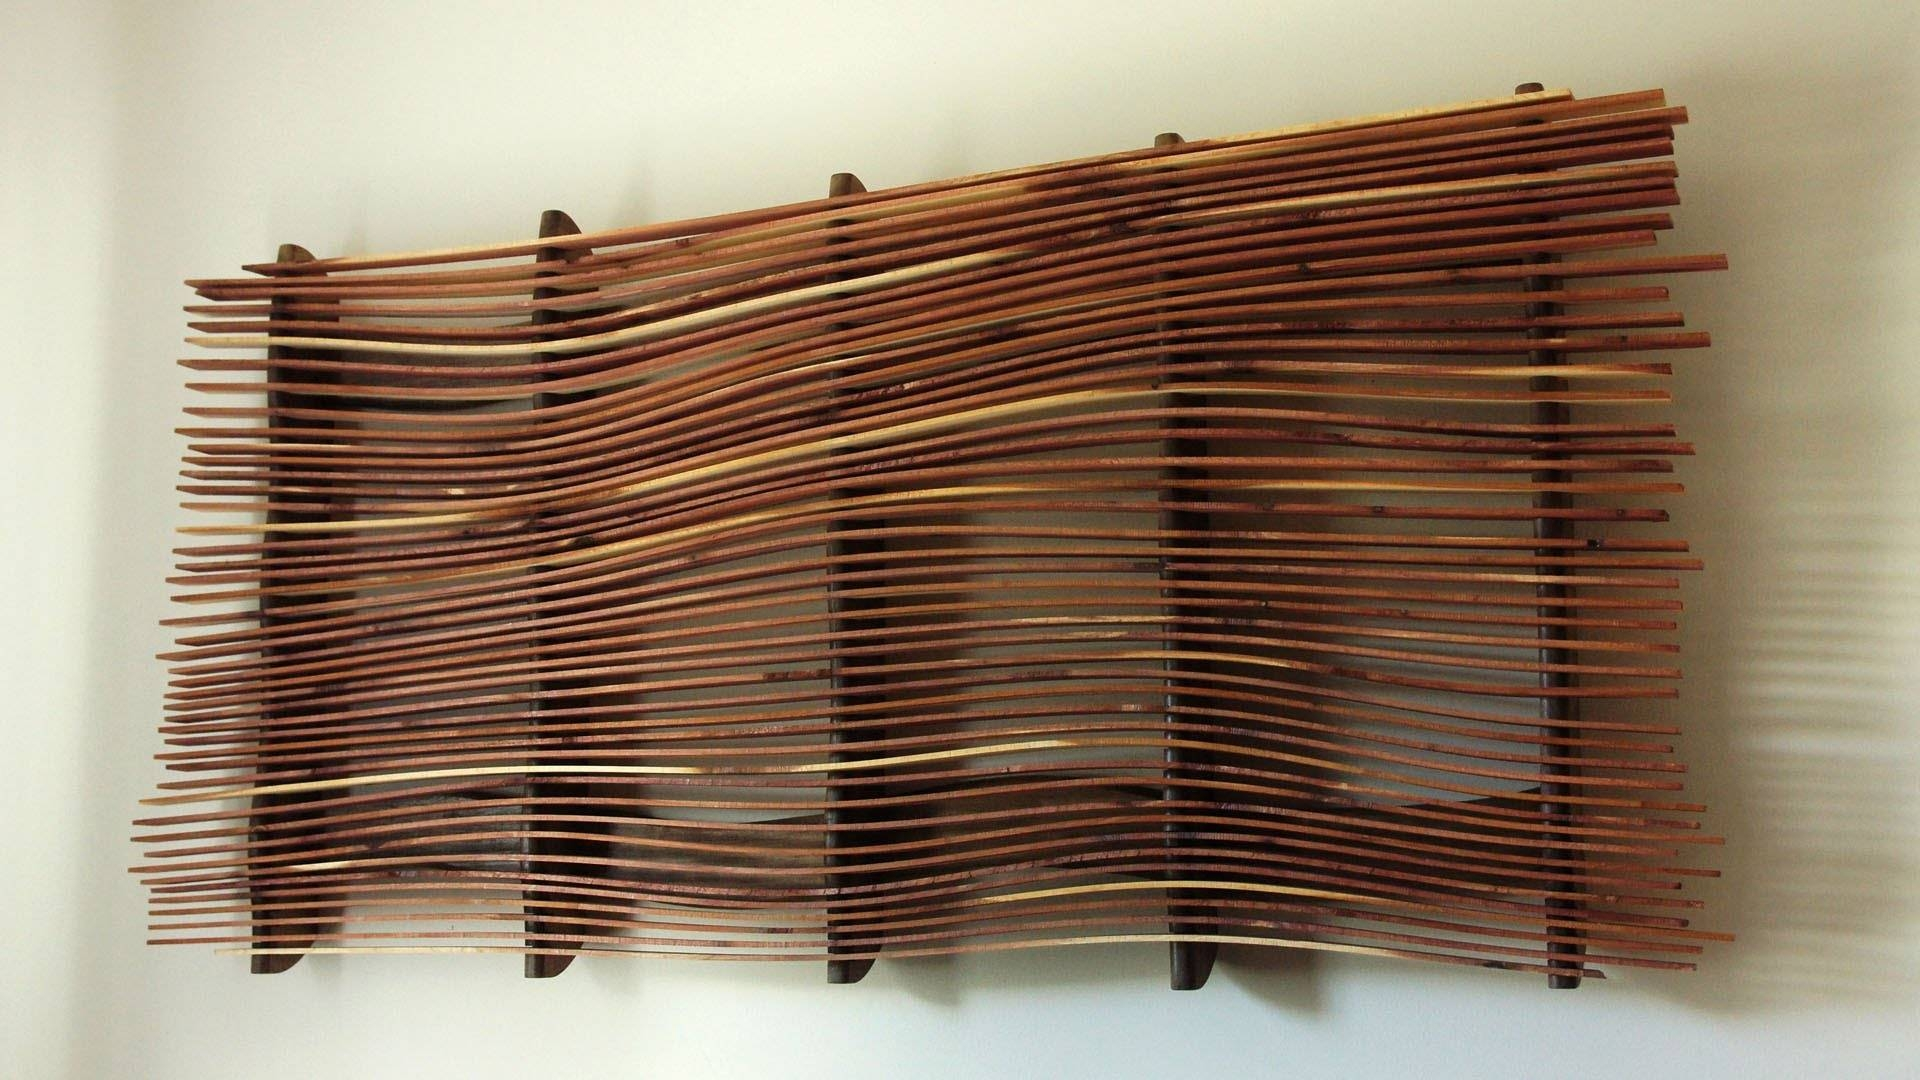 Wall Art From Scrap Wood – Youtube Intended For Most Current Wood 3d Wall Art (View 5 of 20)